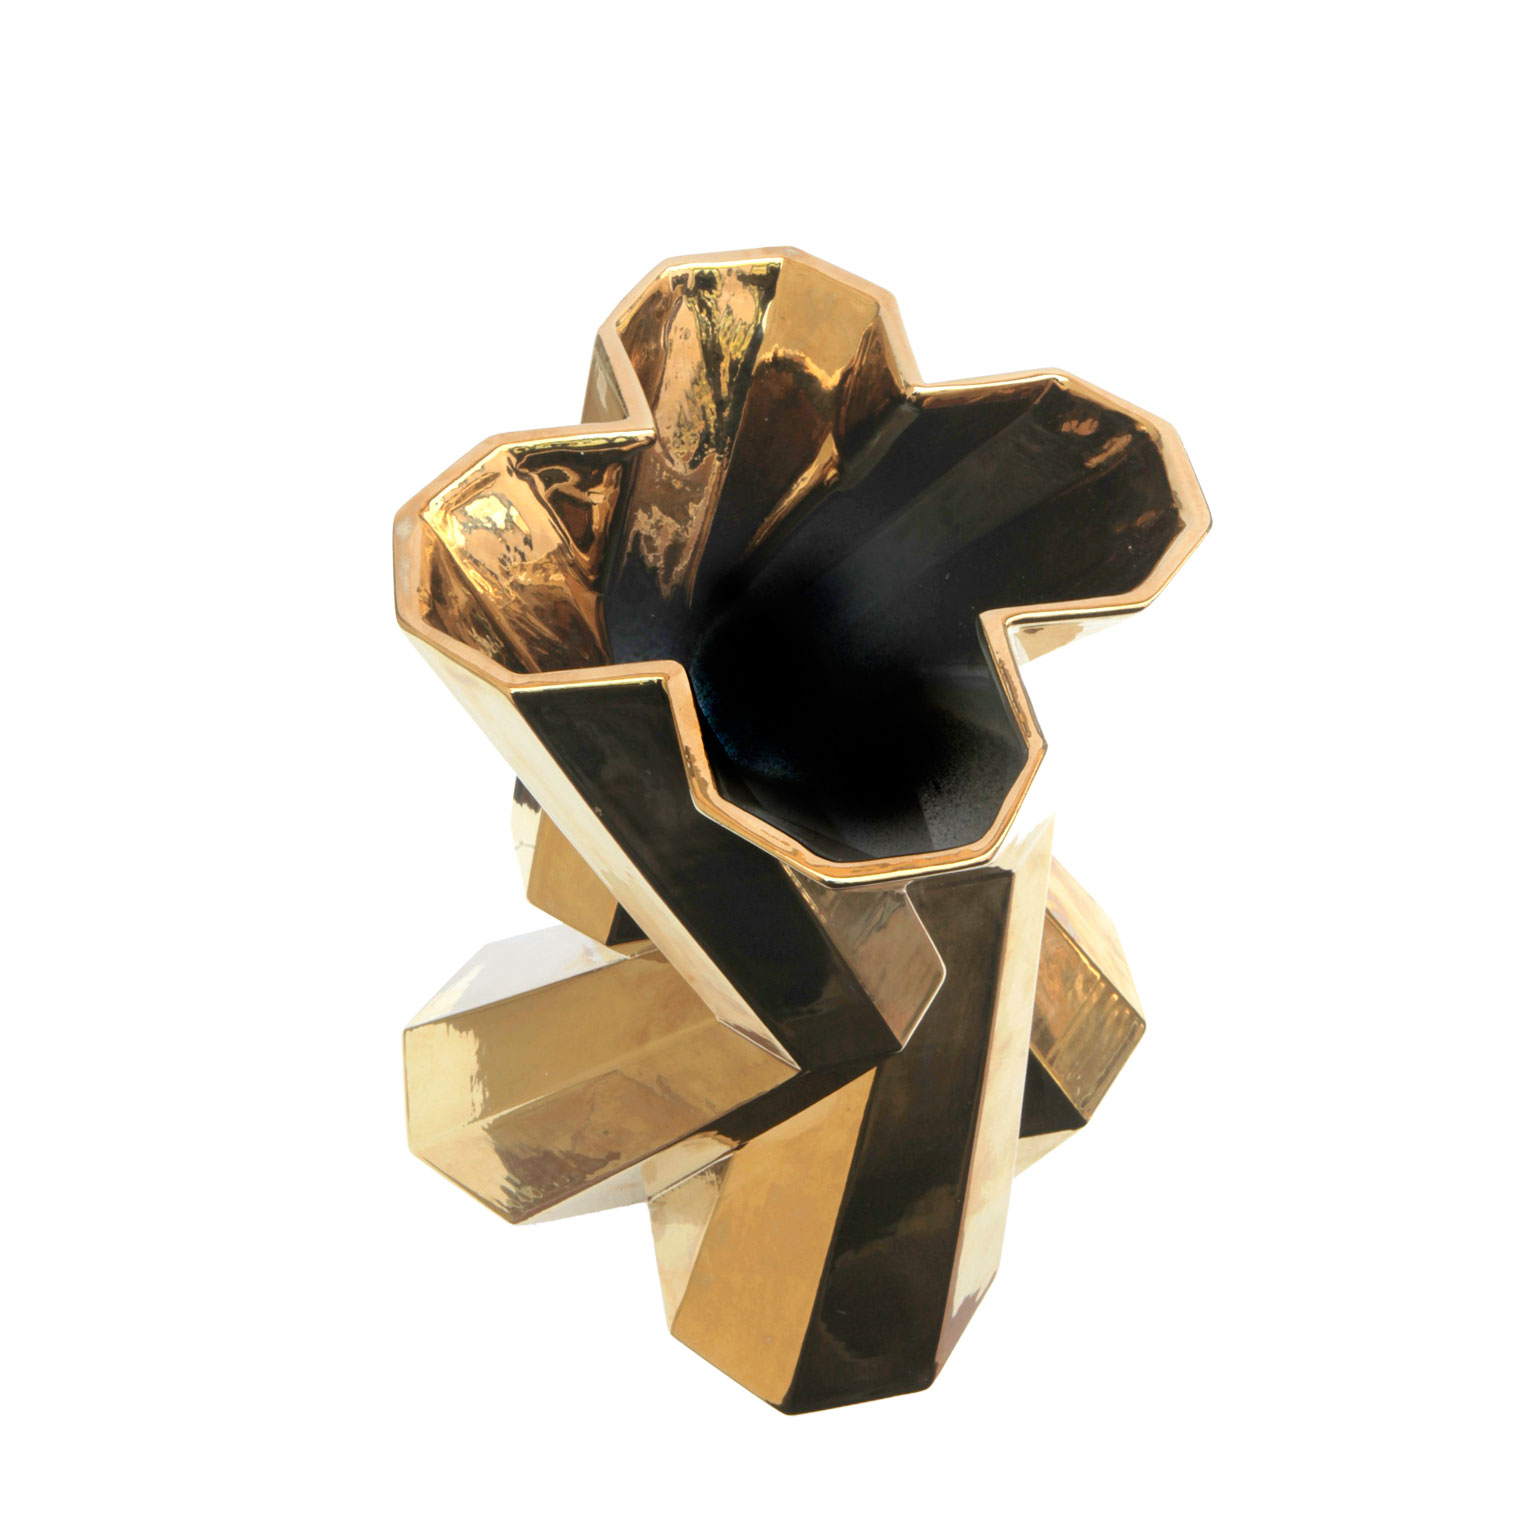 Fortress Castle Vase Gold - <p>Designer Lara Bohinc explores the marriage of ancient and futuristic form in the new Fortress Vase range, which has created a more complex geometric and modern structure from the original inspiration of the octagonal towers at the Diocletian Palace in Croatia. The resulting hexagonal blocks interlock and embrace to allow the play of light and shade on the many surfaces and angles. There are four Fortress shapes: the larger Column and Castle (45cm height), the Pillar (30cm height) and the Tower vase (37cm height). These are hand made from ceramic in a small Italian artisanal workshop and come in three finishes: dark gold, bronze and speckled white.</p>  | Matter of Stuff